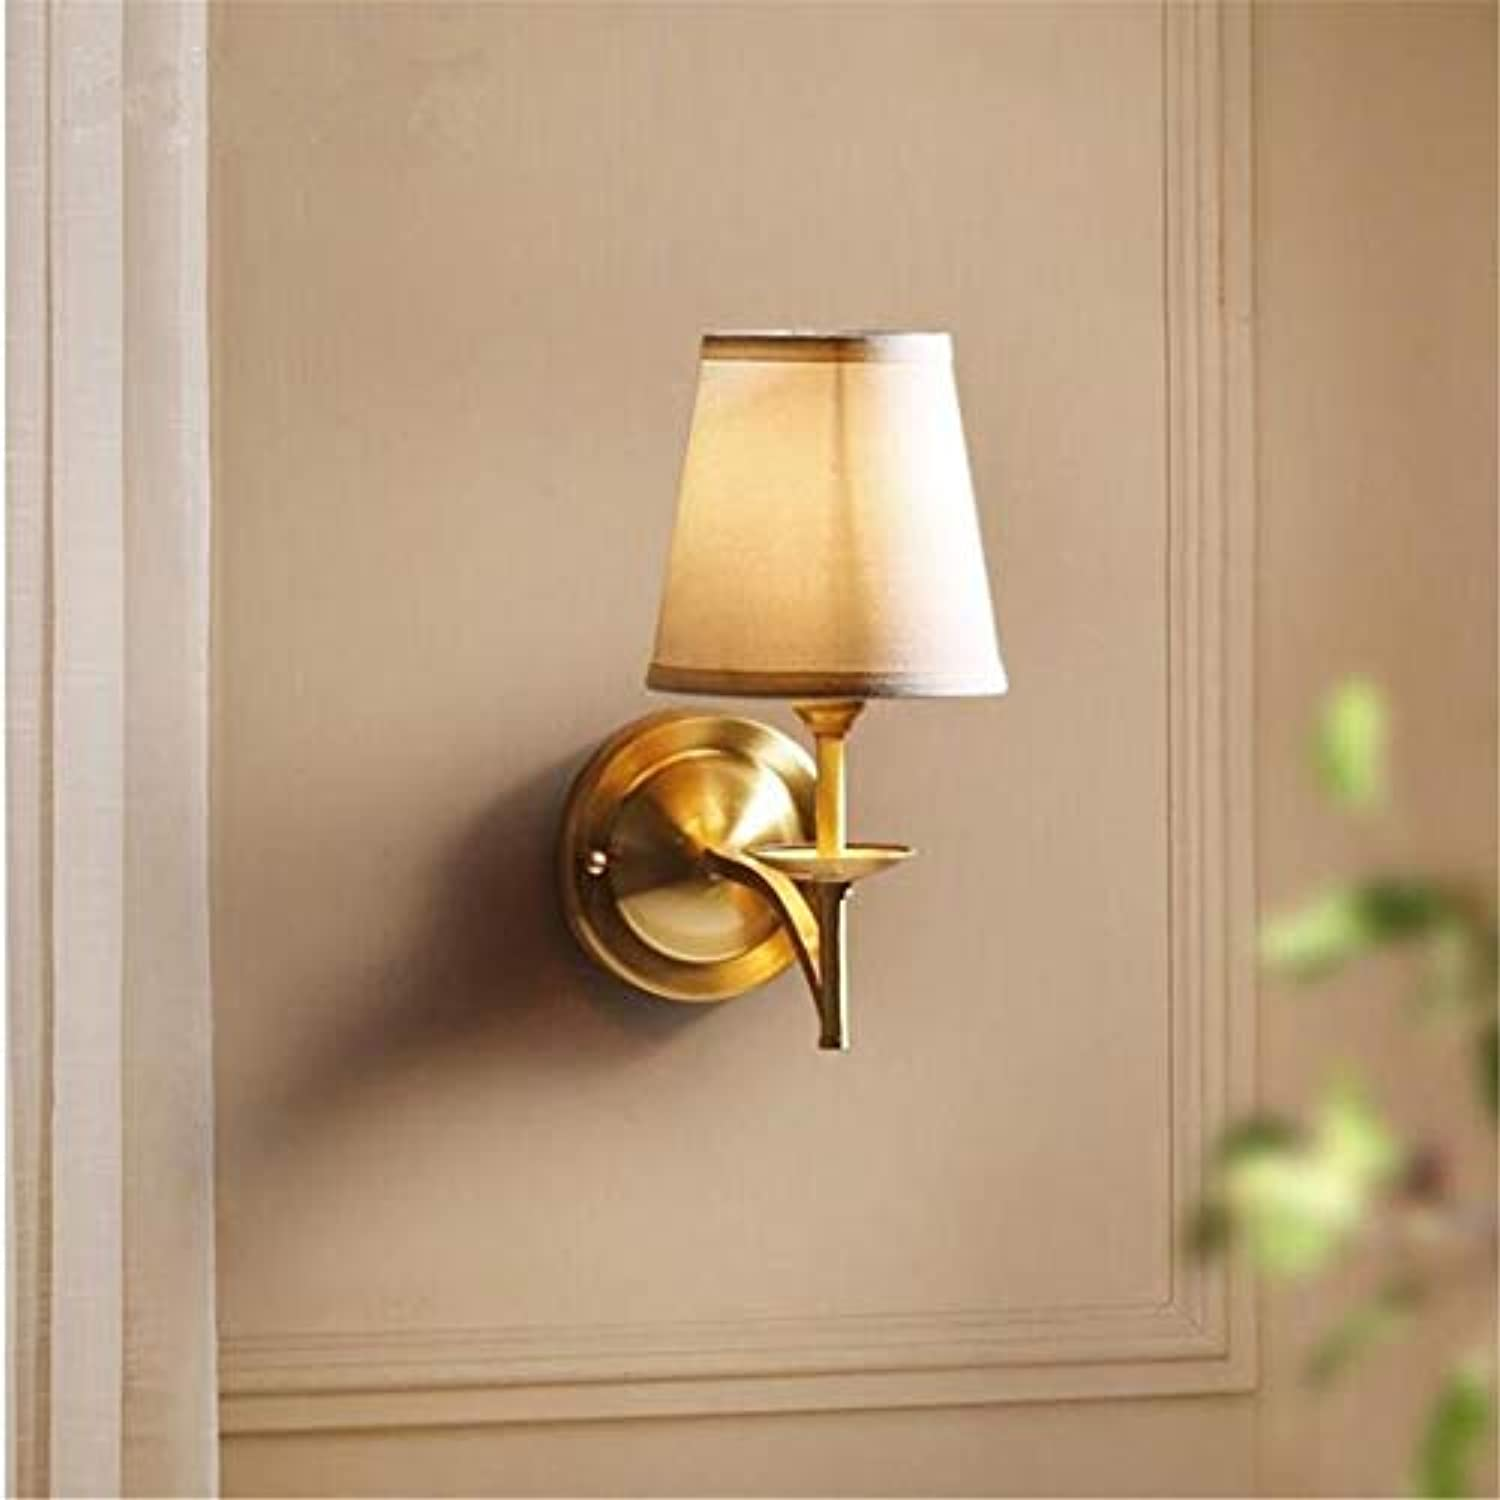 Chandelierwall Lamp Luxury Designed Living Dining Room Bedroom Decorative Wall Light Fixture Modern Minimalist Aisle Corridor E27 1-Light Wall Sconce Lantern